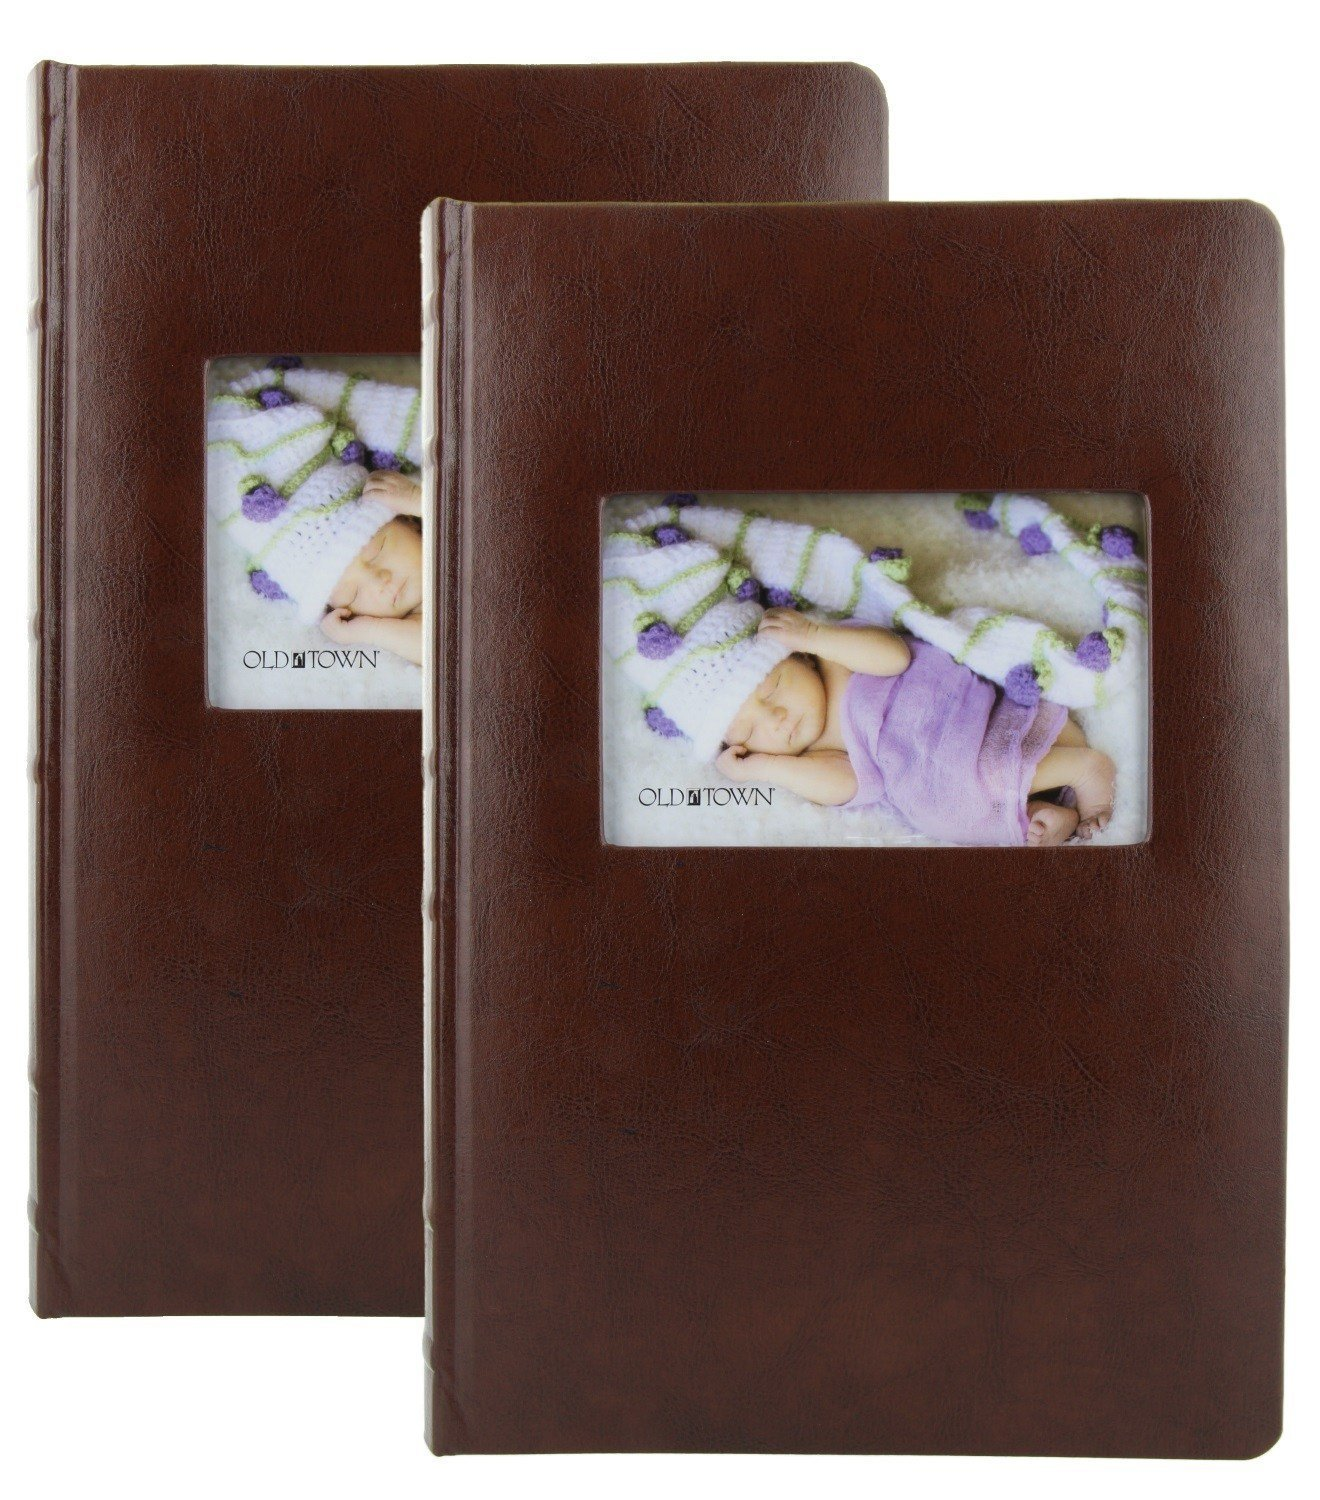 2 Pack Old Town Leather Photo Albums - Brown by Old Town